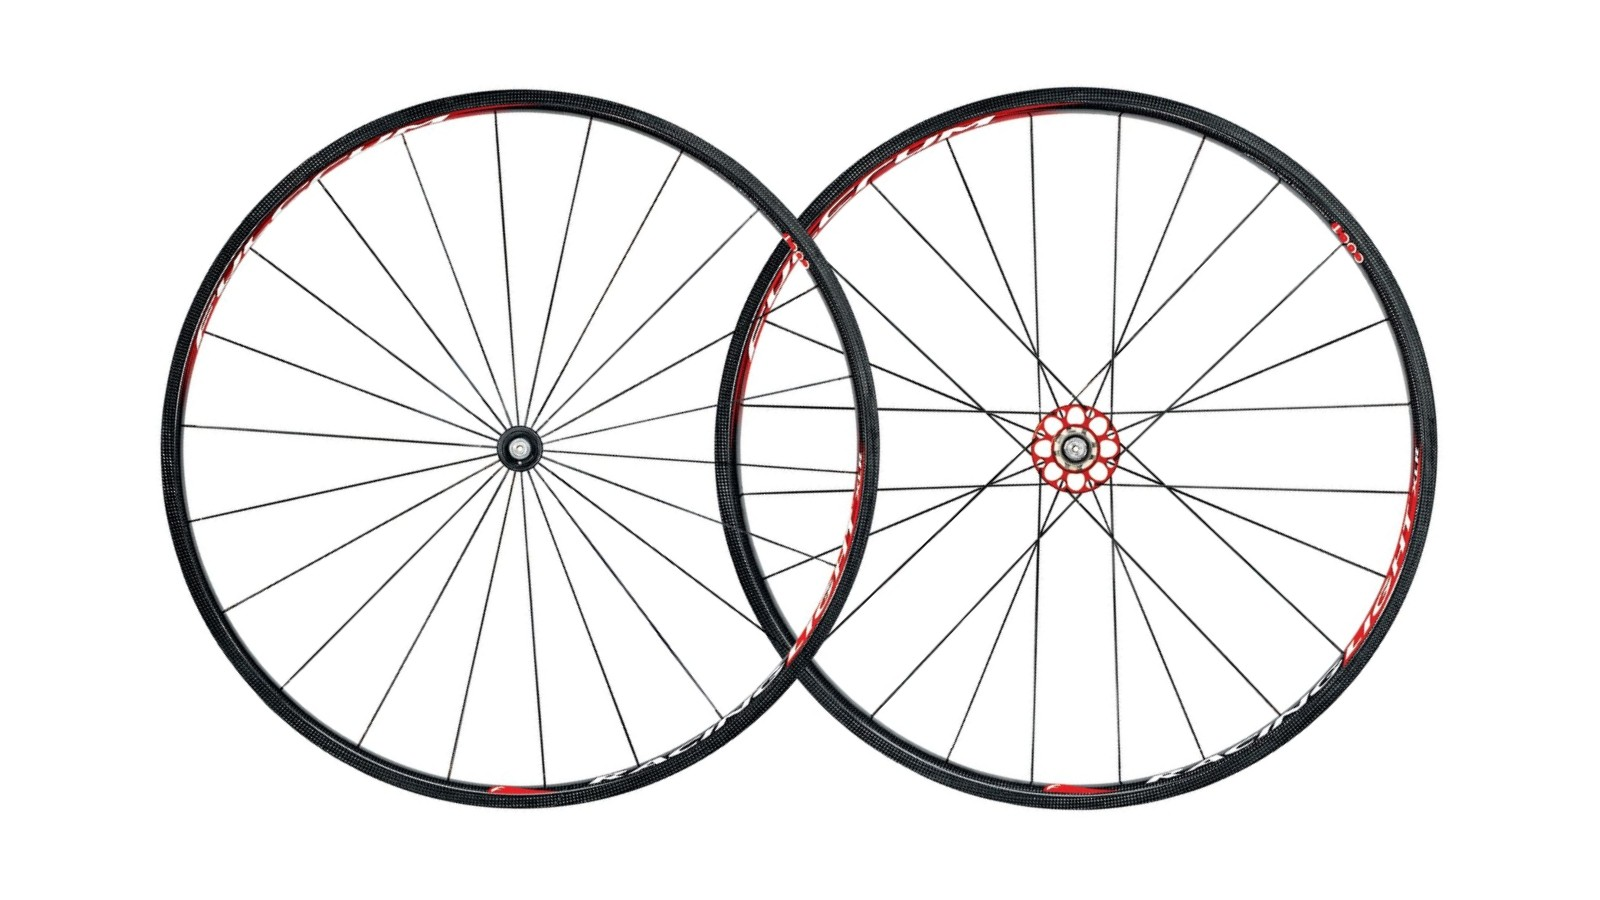 These Fulcrum Racing Light XLR Road wheels feature CULT ceramic bearings